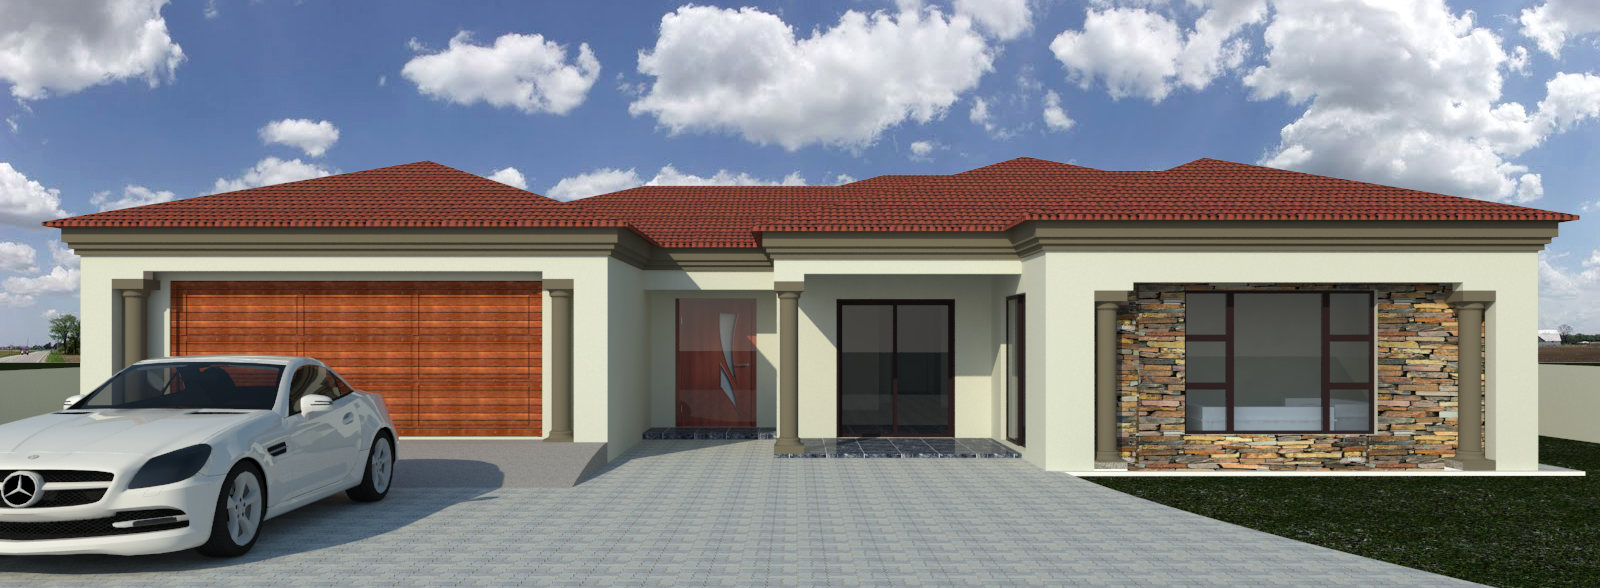 My house plans south africa my house plans most My home design build